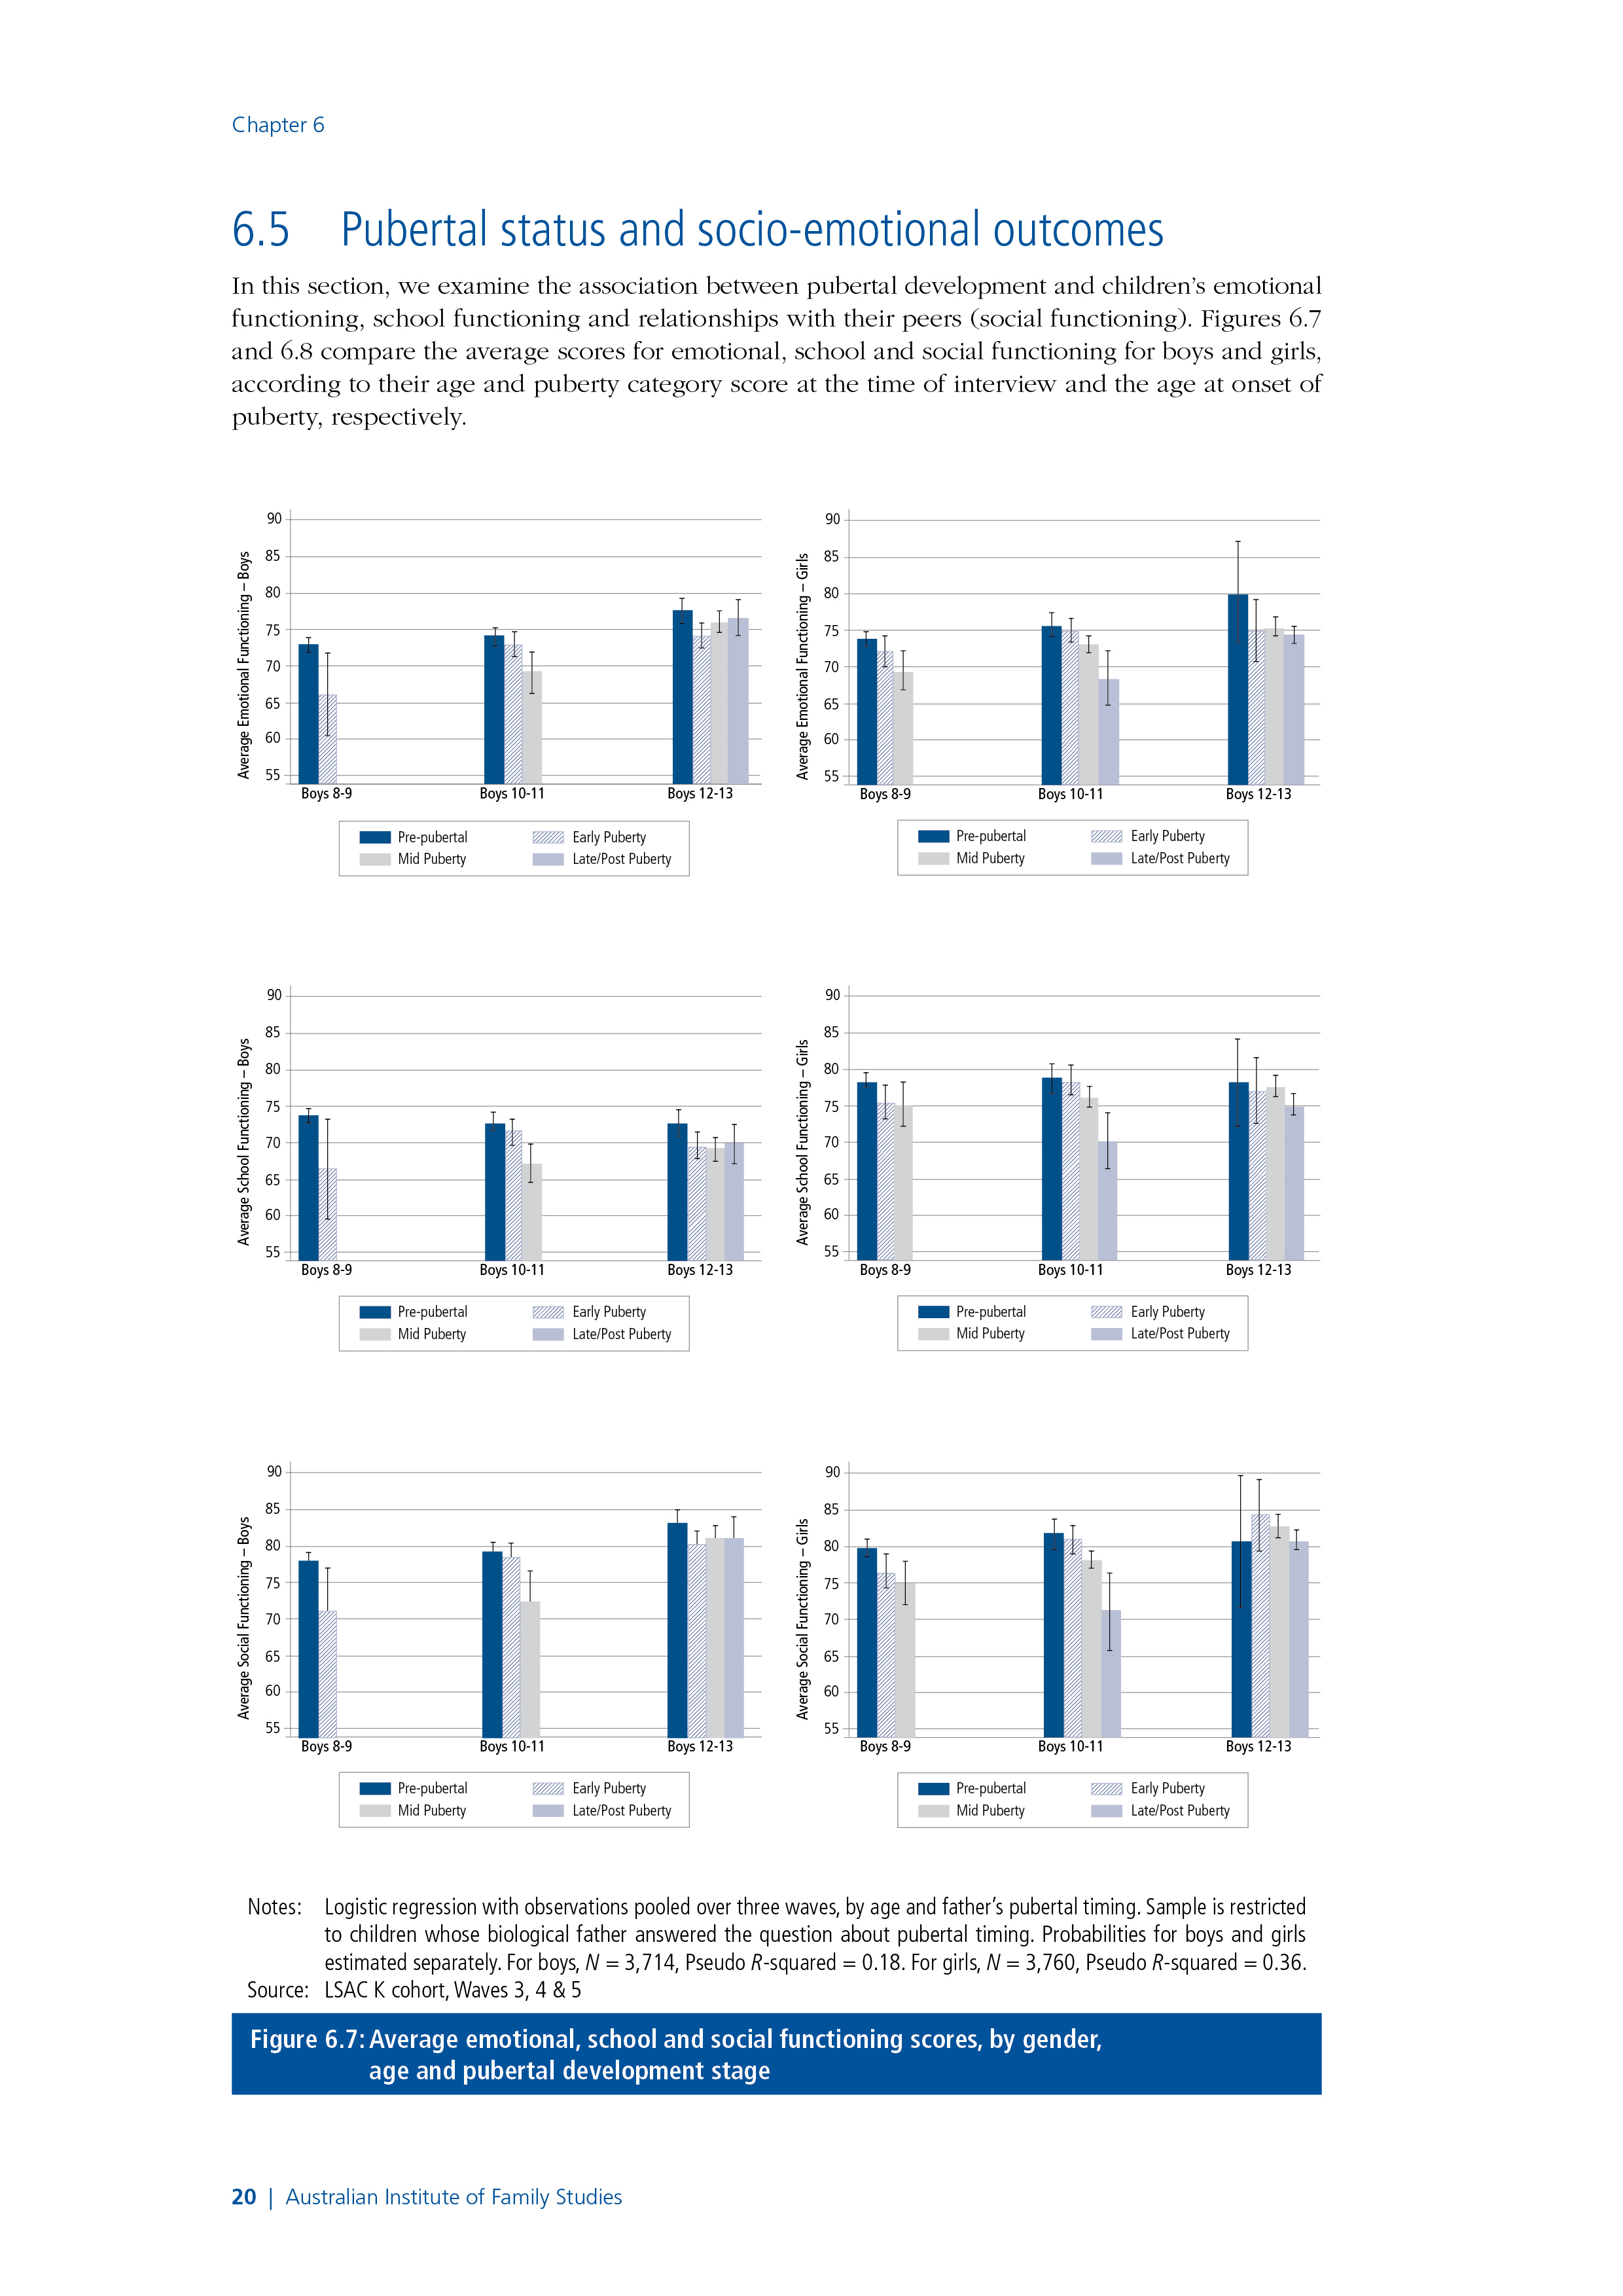 Figure 6.7:    Average emotional, school and social functioning scores, by gender,   age and pubertal development stage